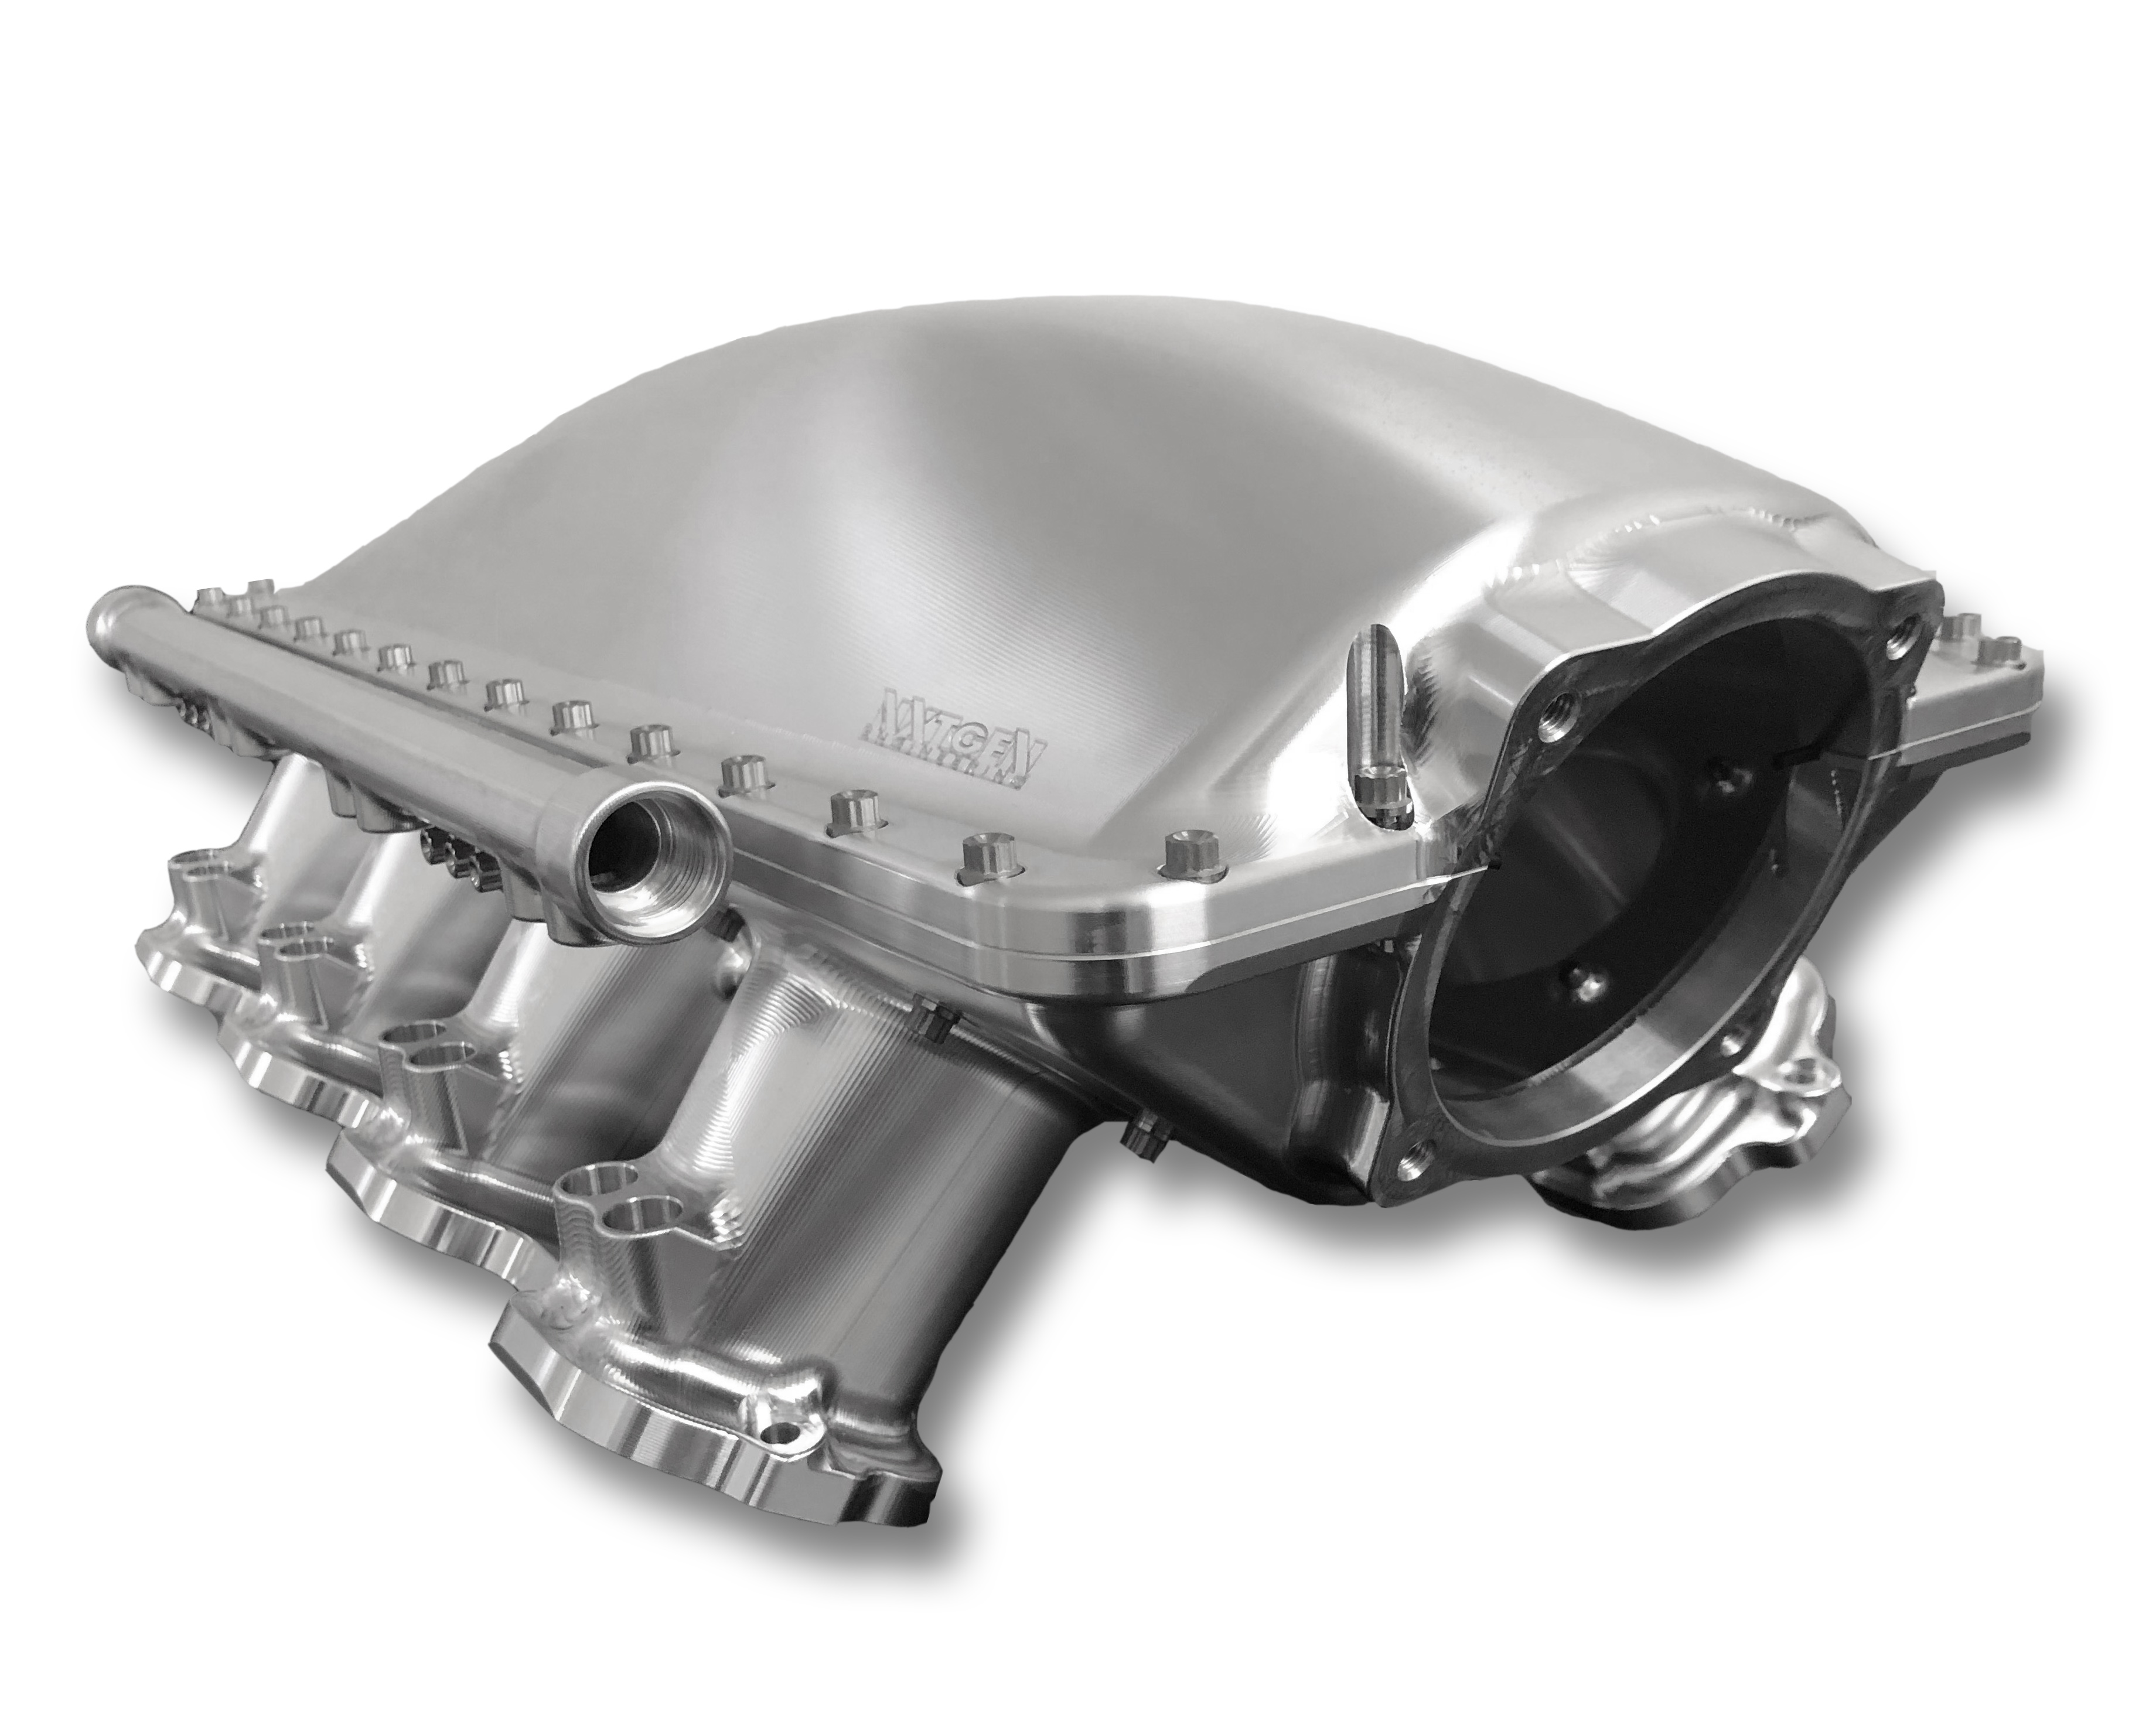 Main LS7 Billet Aspirated Intake Manifold